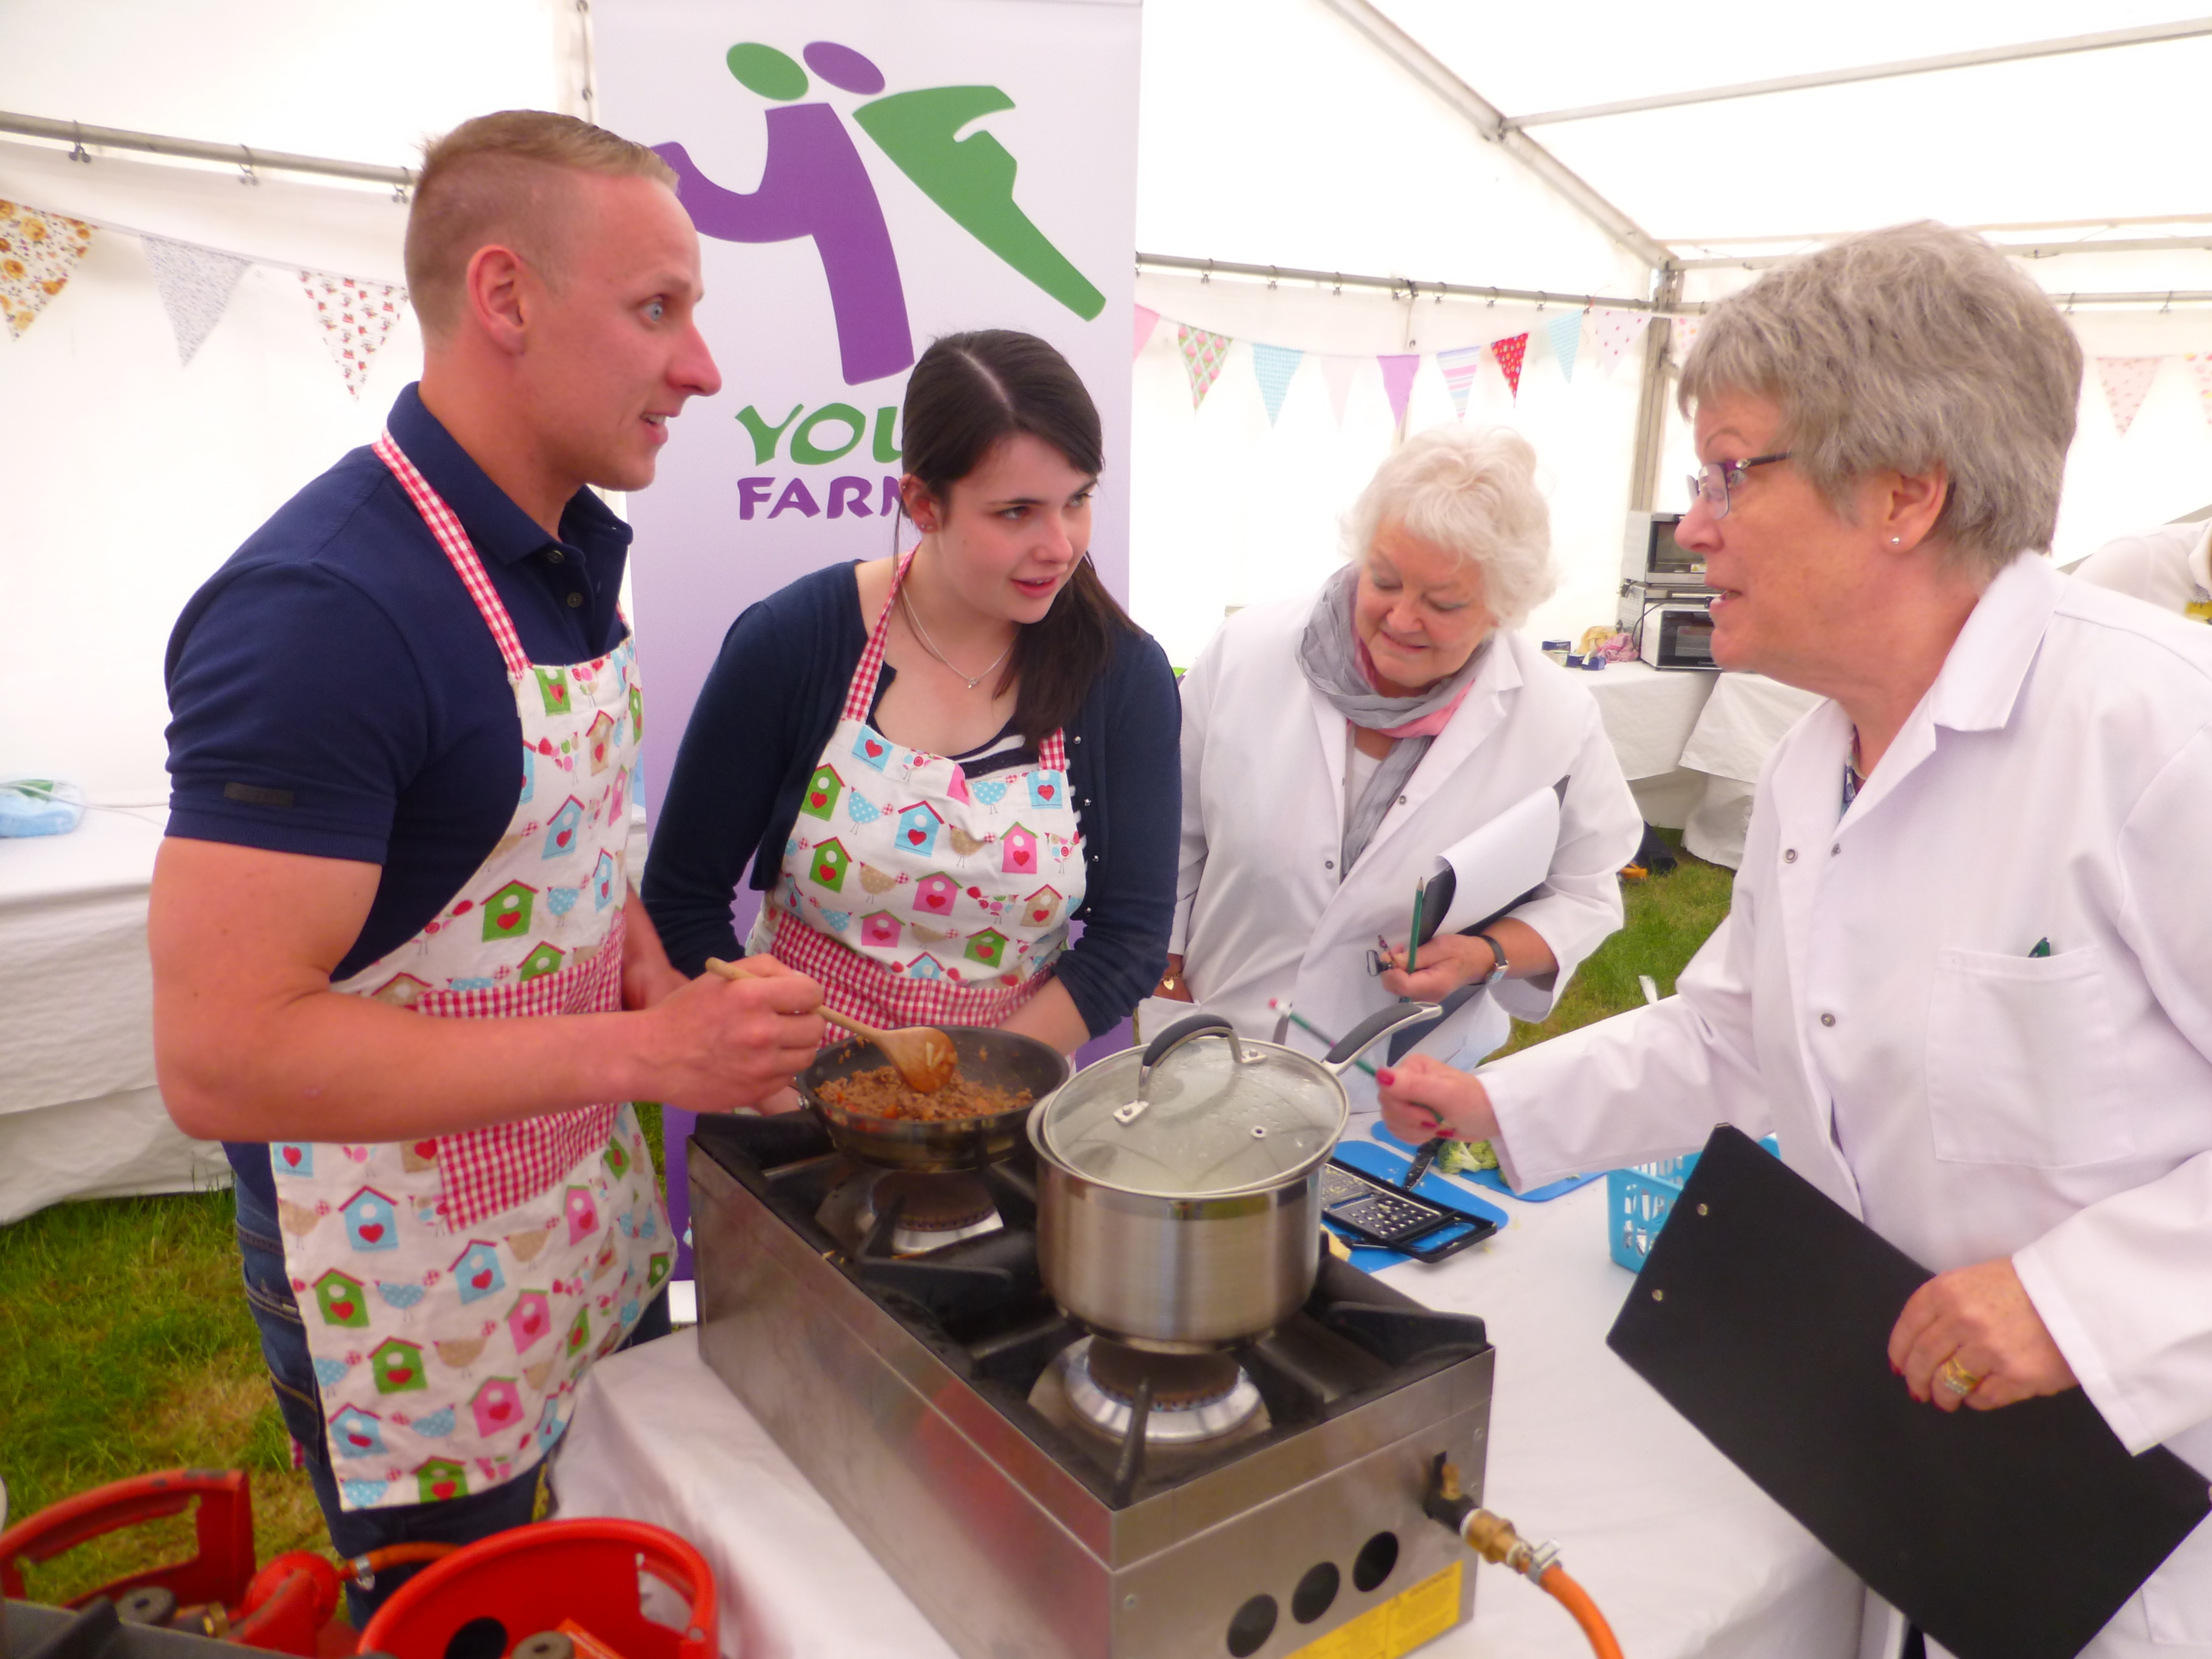 Young farmers cookery teams faced scrutiny from the judges